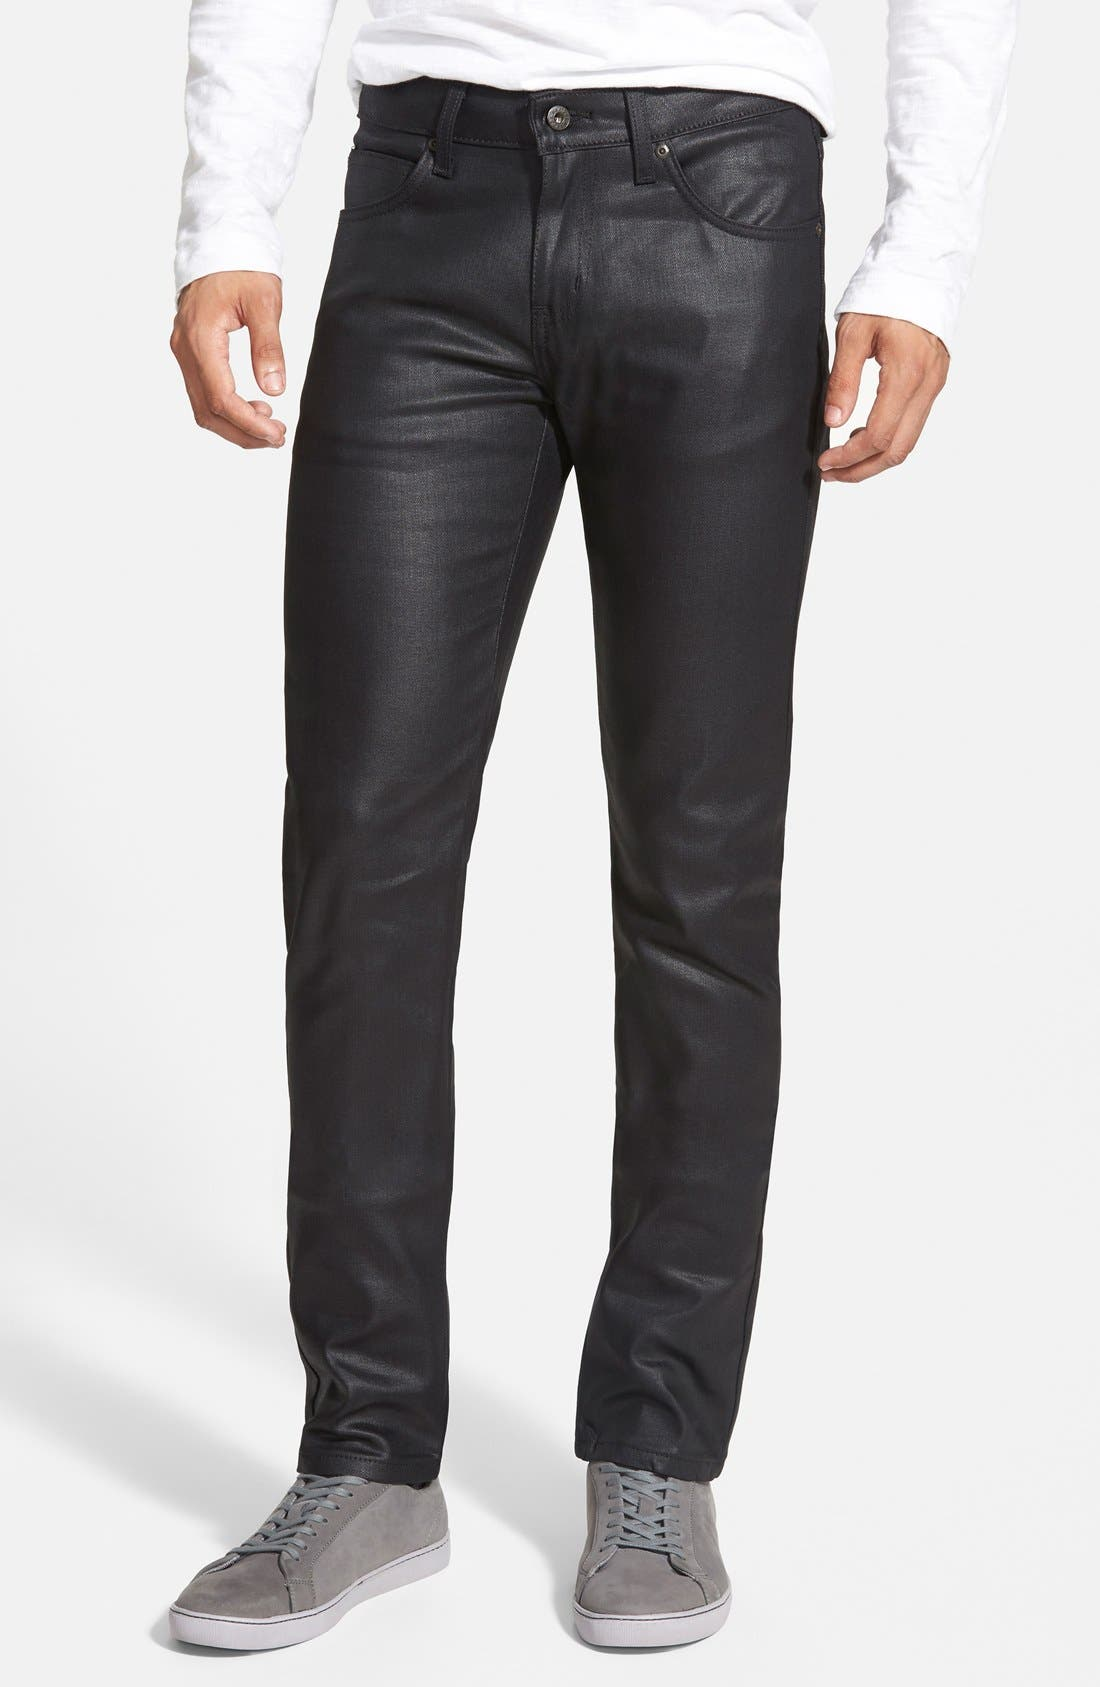 Naked & Famous Denim Super Skinny Guy Skinny Stretch Jeans (Black)